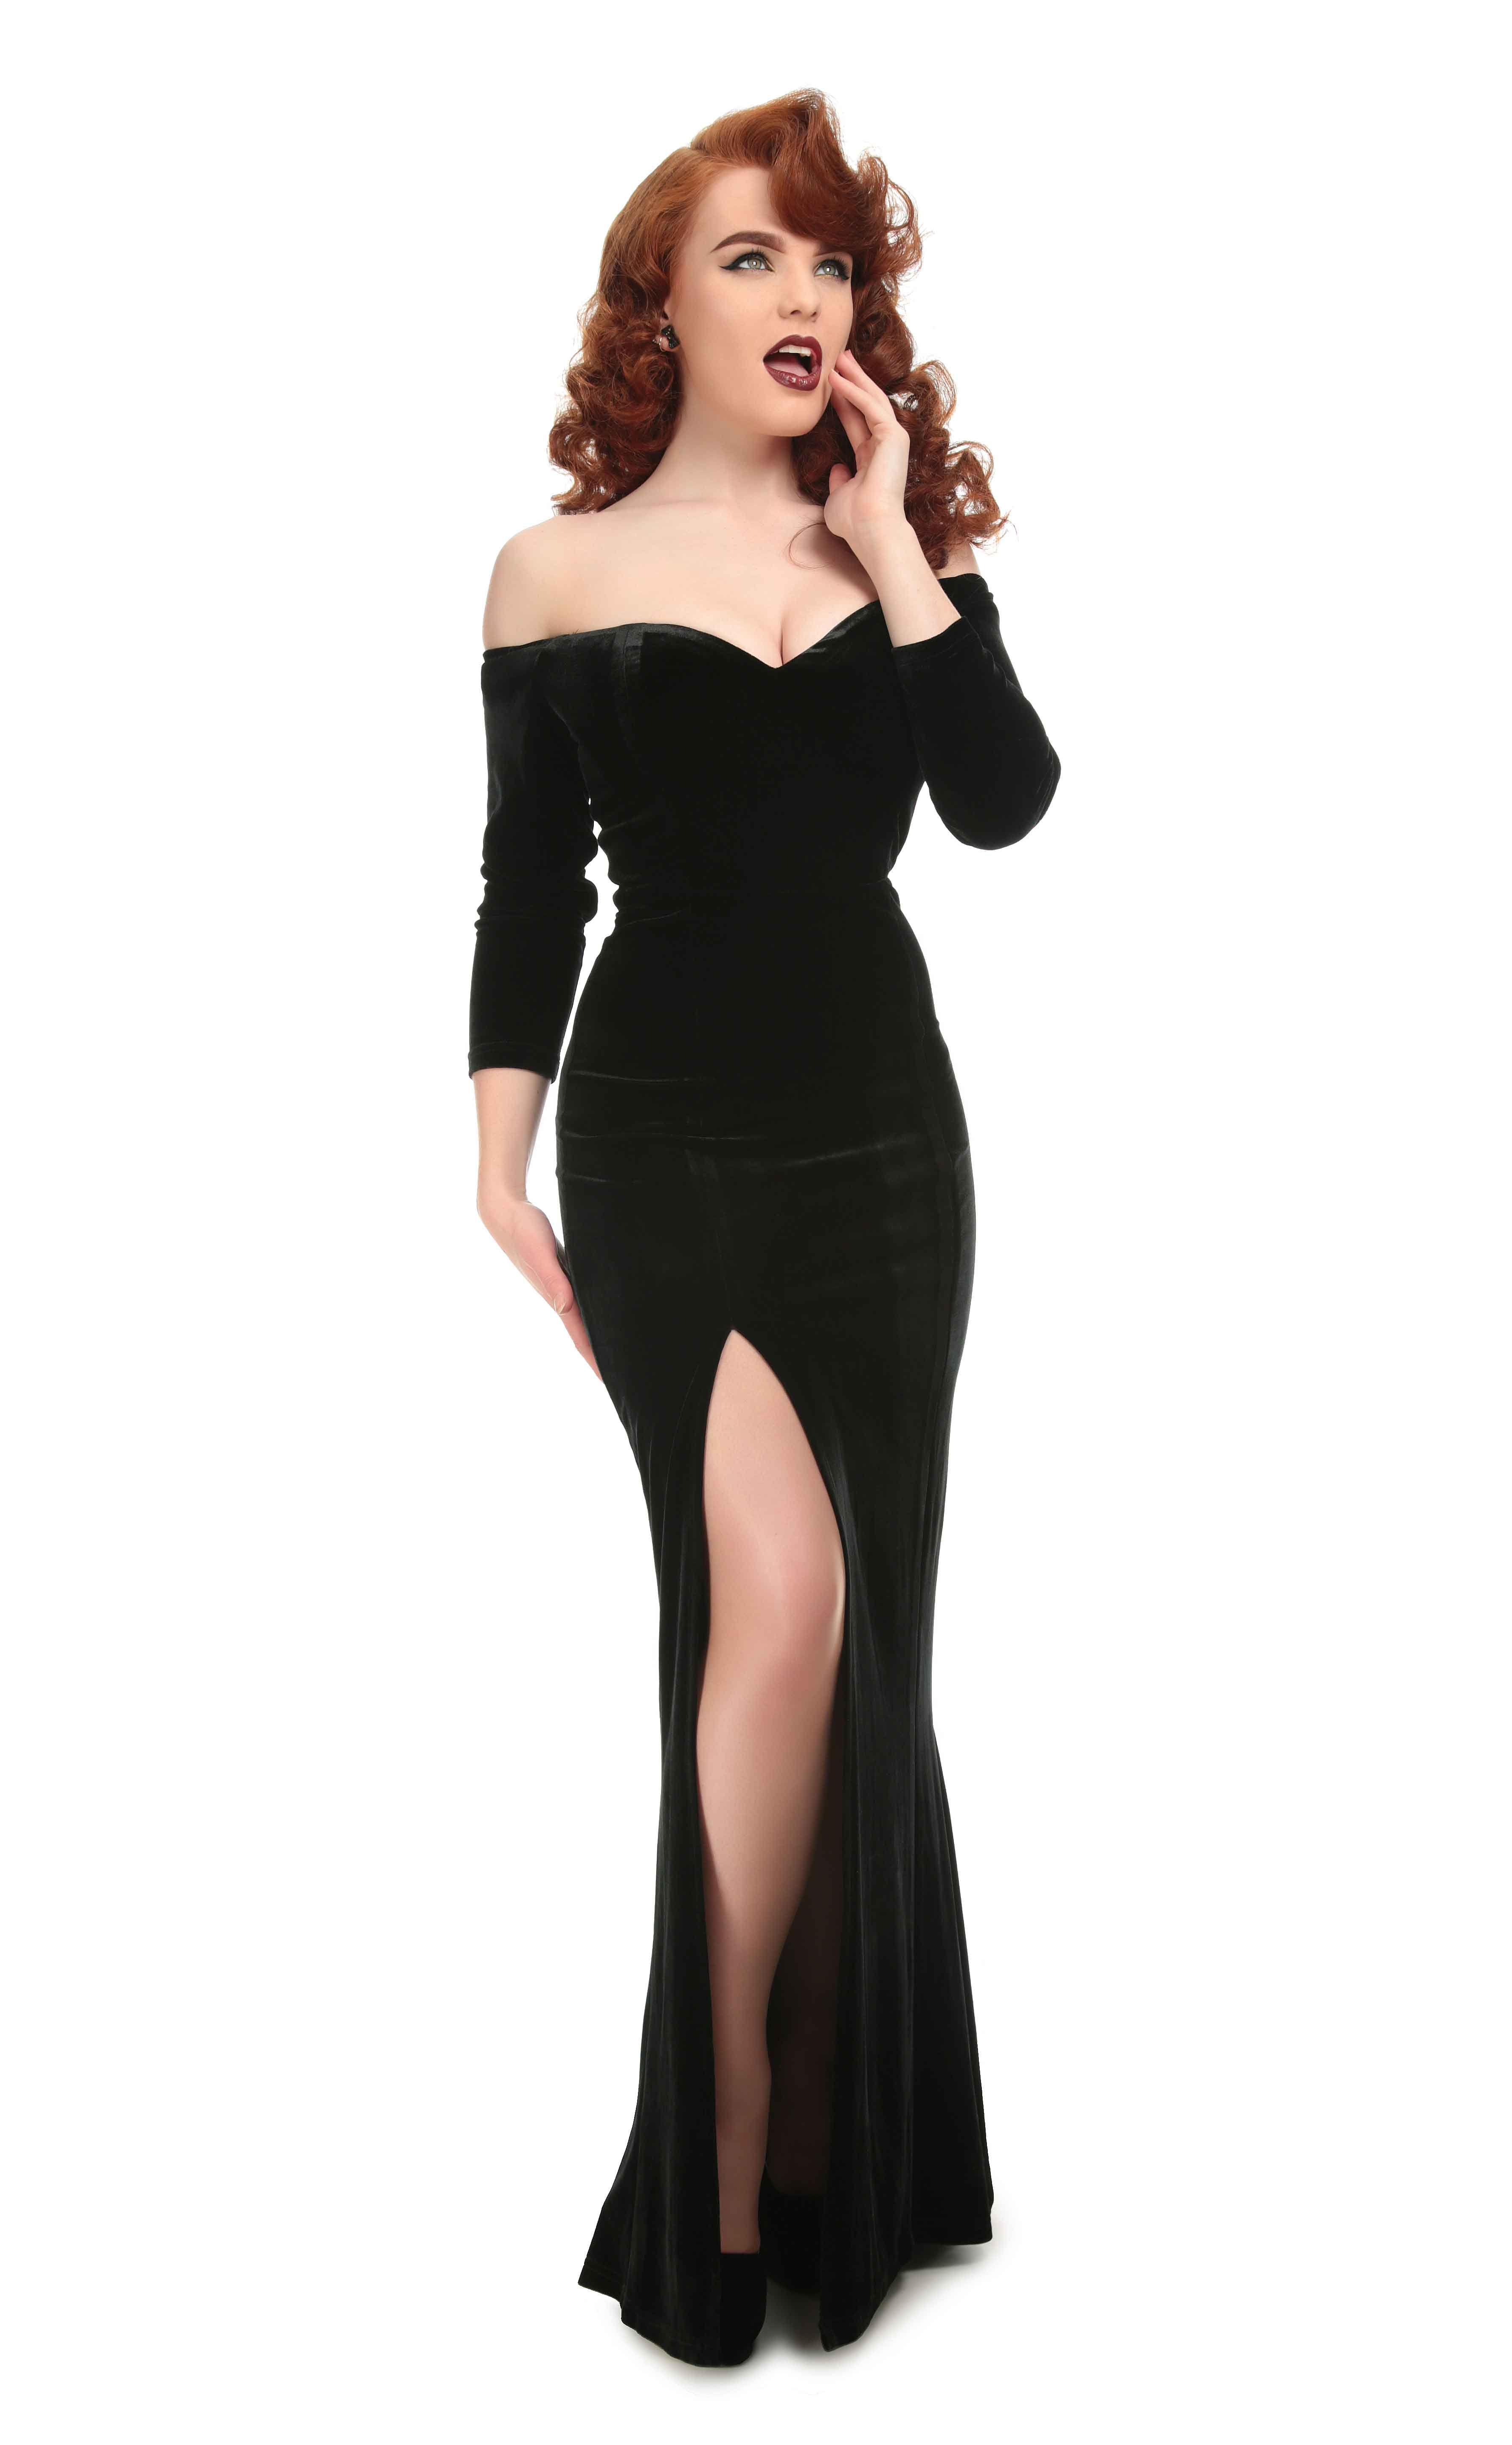 36d2a0a3b8 Collectif Plus Size Anjelica Velvet Maxi Dress Absolutely stunning plus  size black velvet maxi dress from Collectif! The beautiful Anjelica dress  screams ...